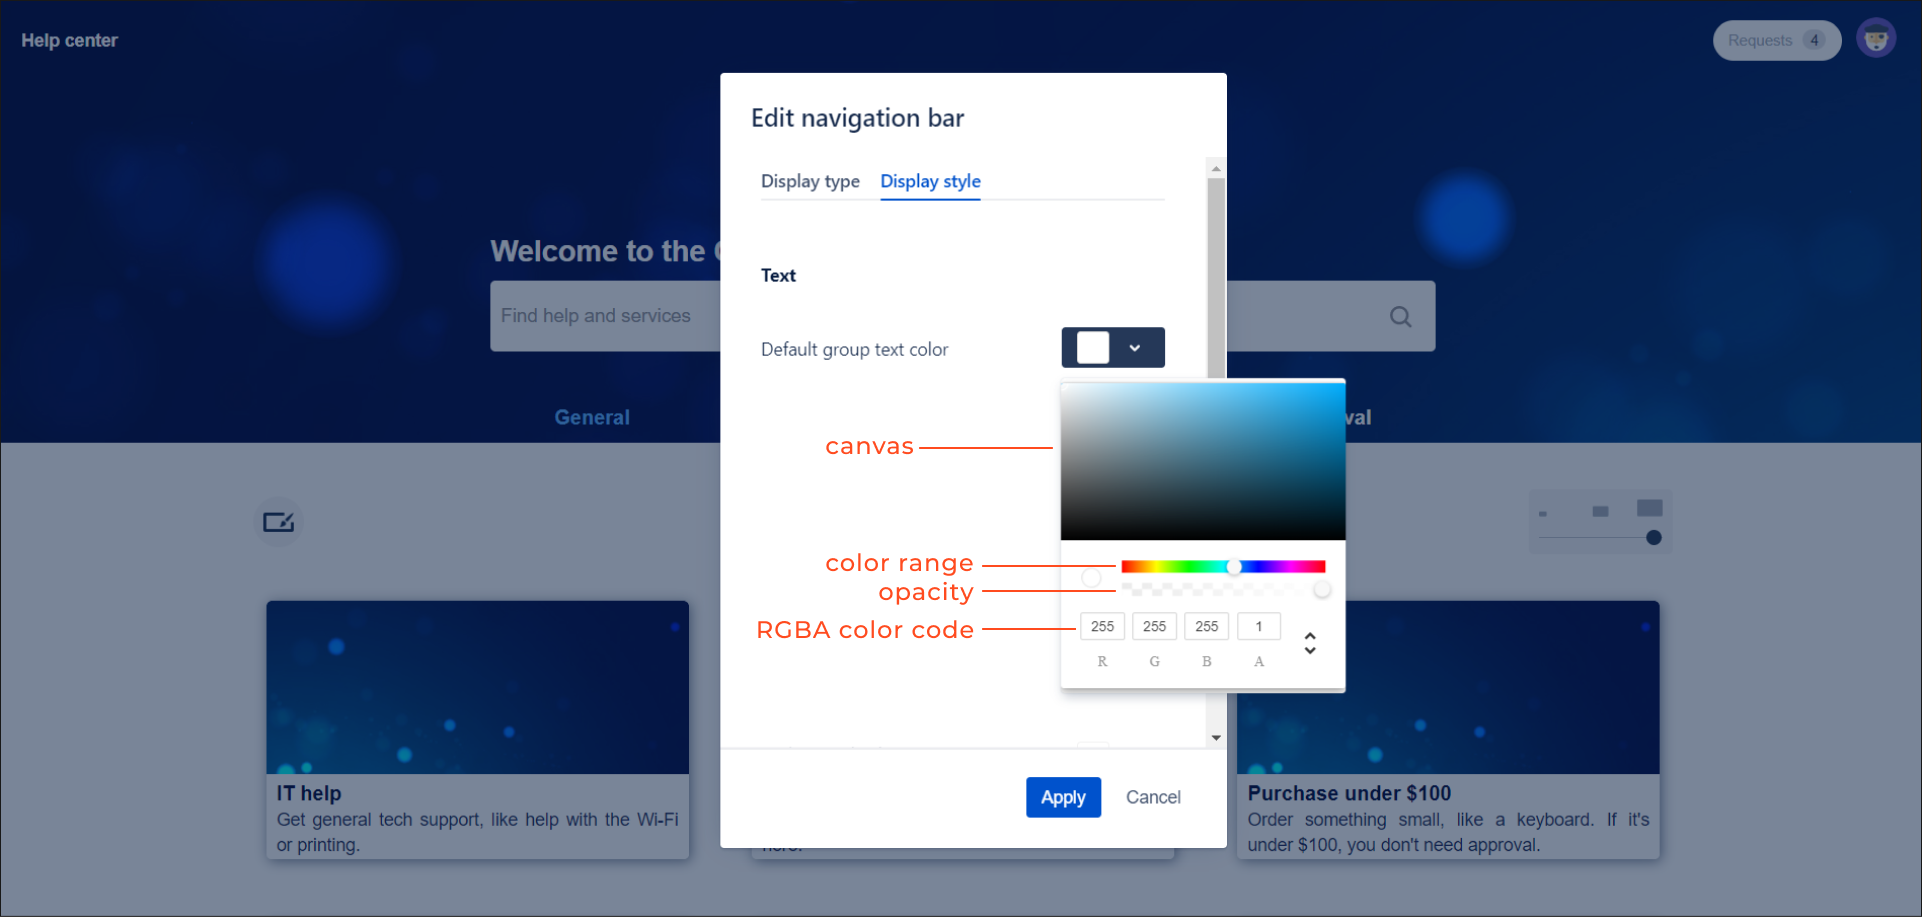 Enter the RGBA color code of default group text with Theme Extension for Jira Service Desk